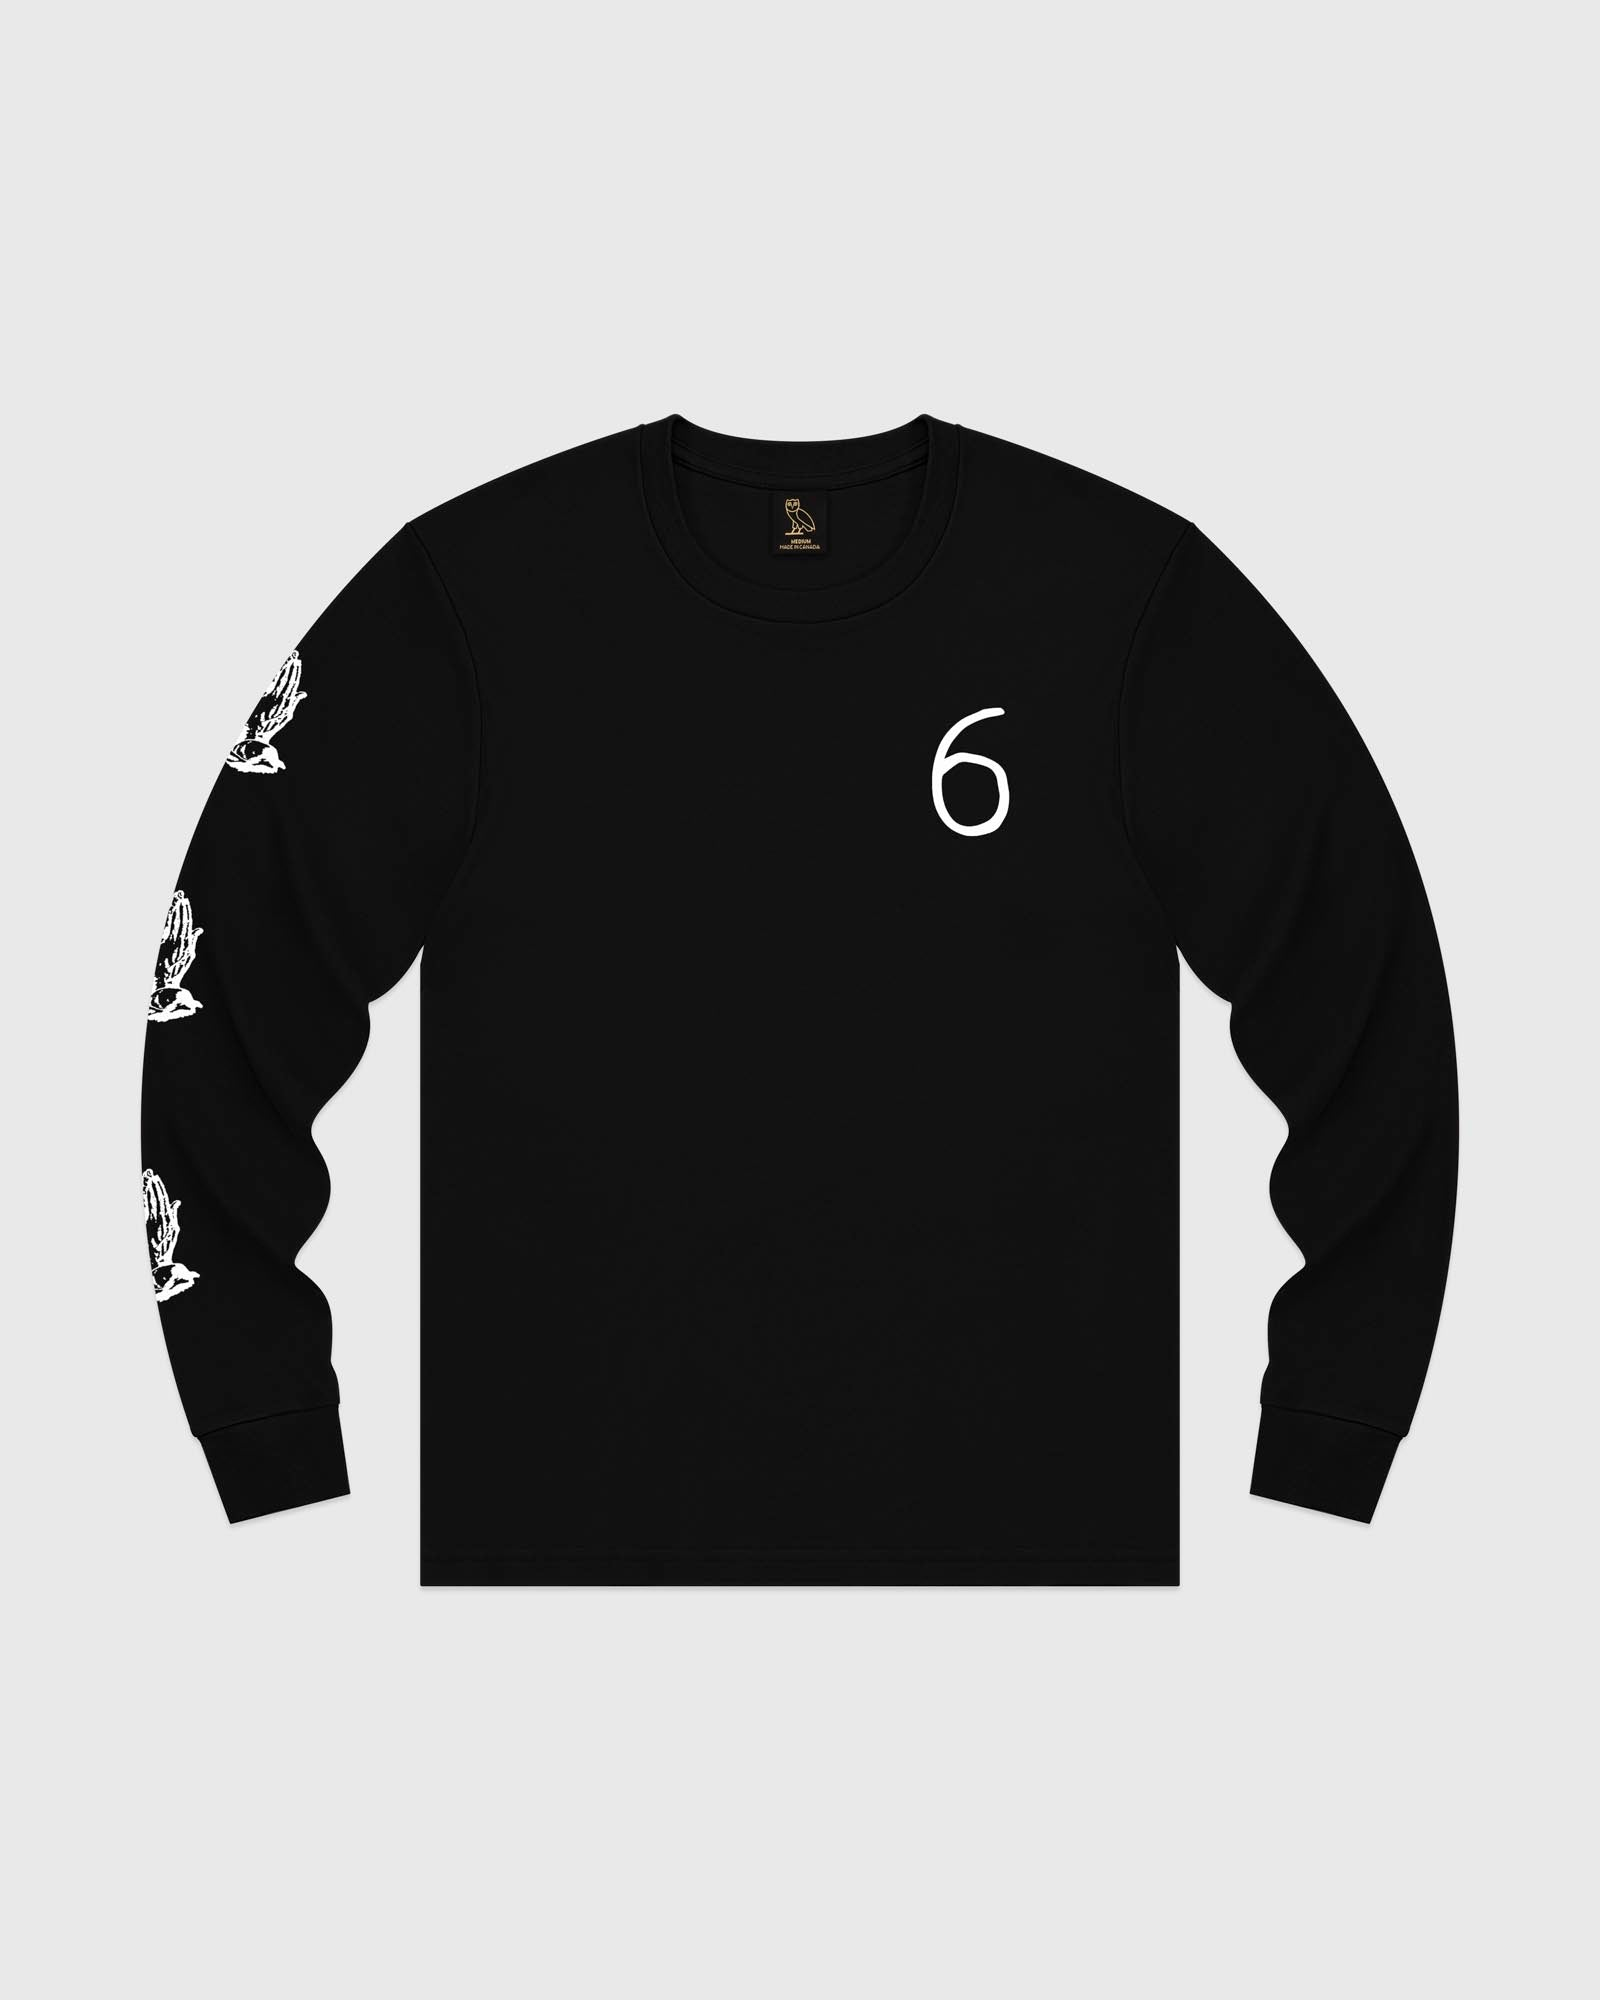 6 OWL LONG SLEEVE T-SHIRT - BLACK IMAGE #1